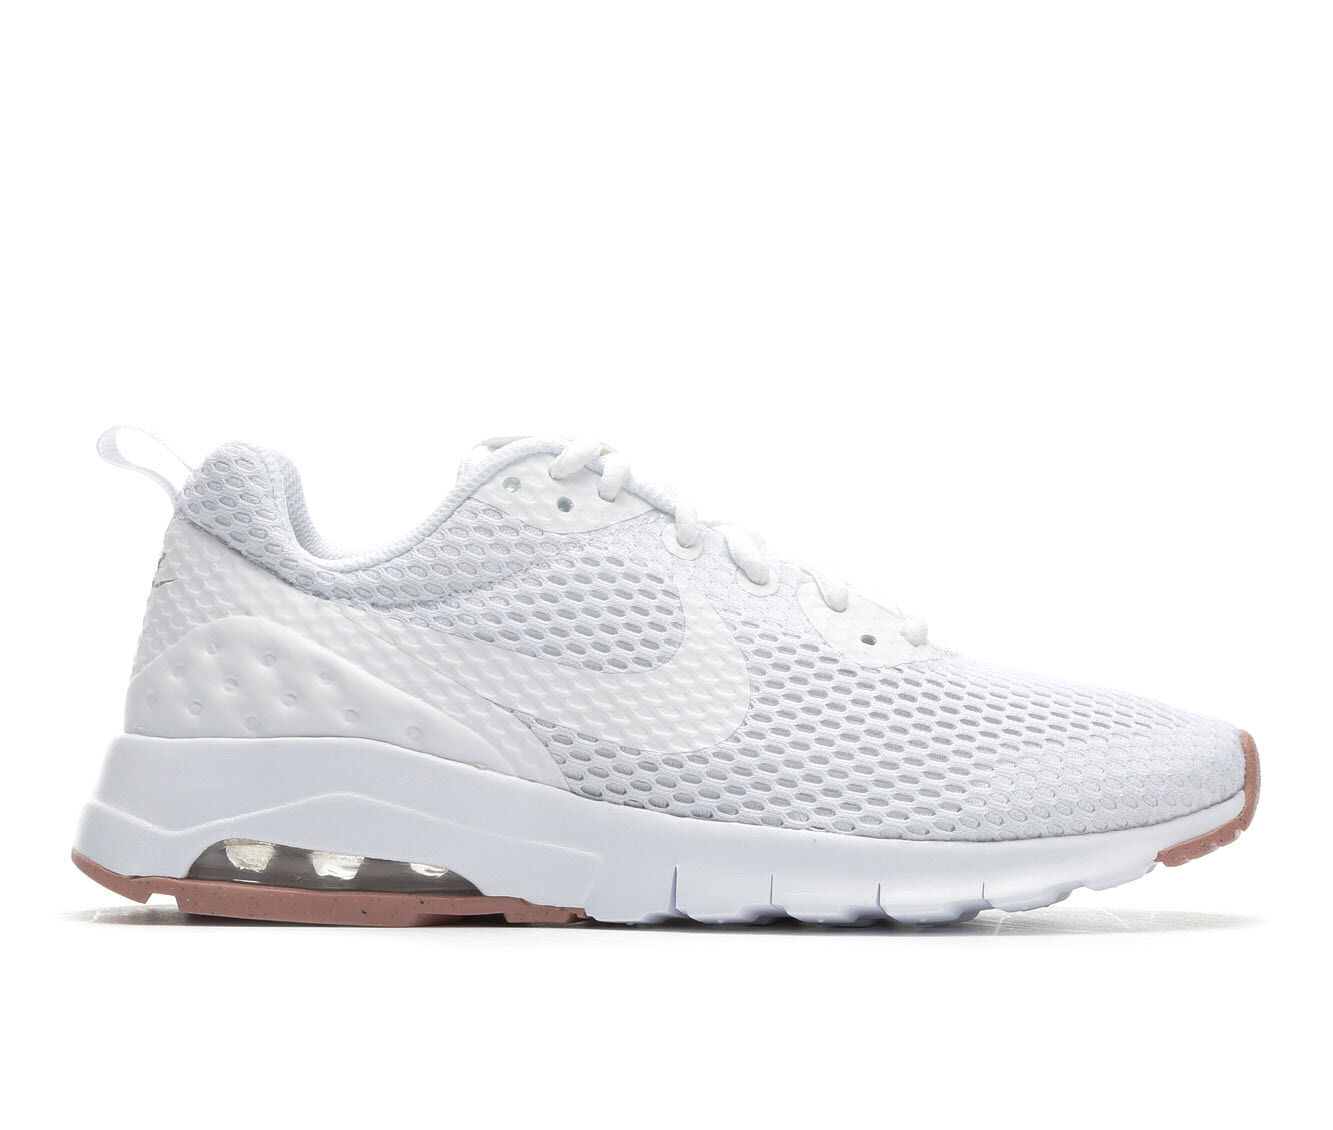 Women's Nike Air Max Motion Low Sneakers big discount cheap price cheap sale wide range of release dates authentic store online free shipping lowest price pCH7I